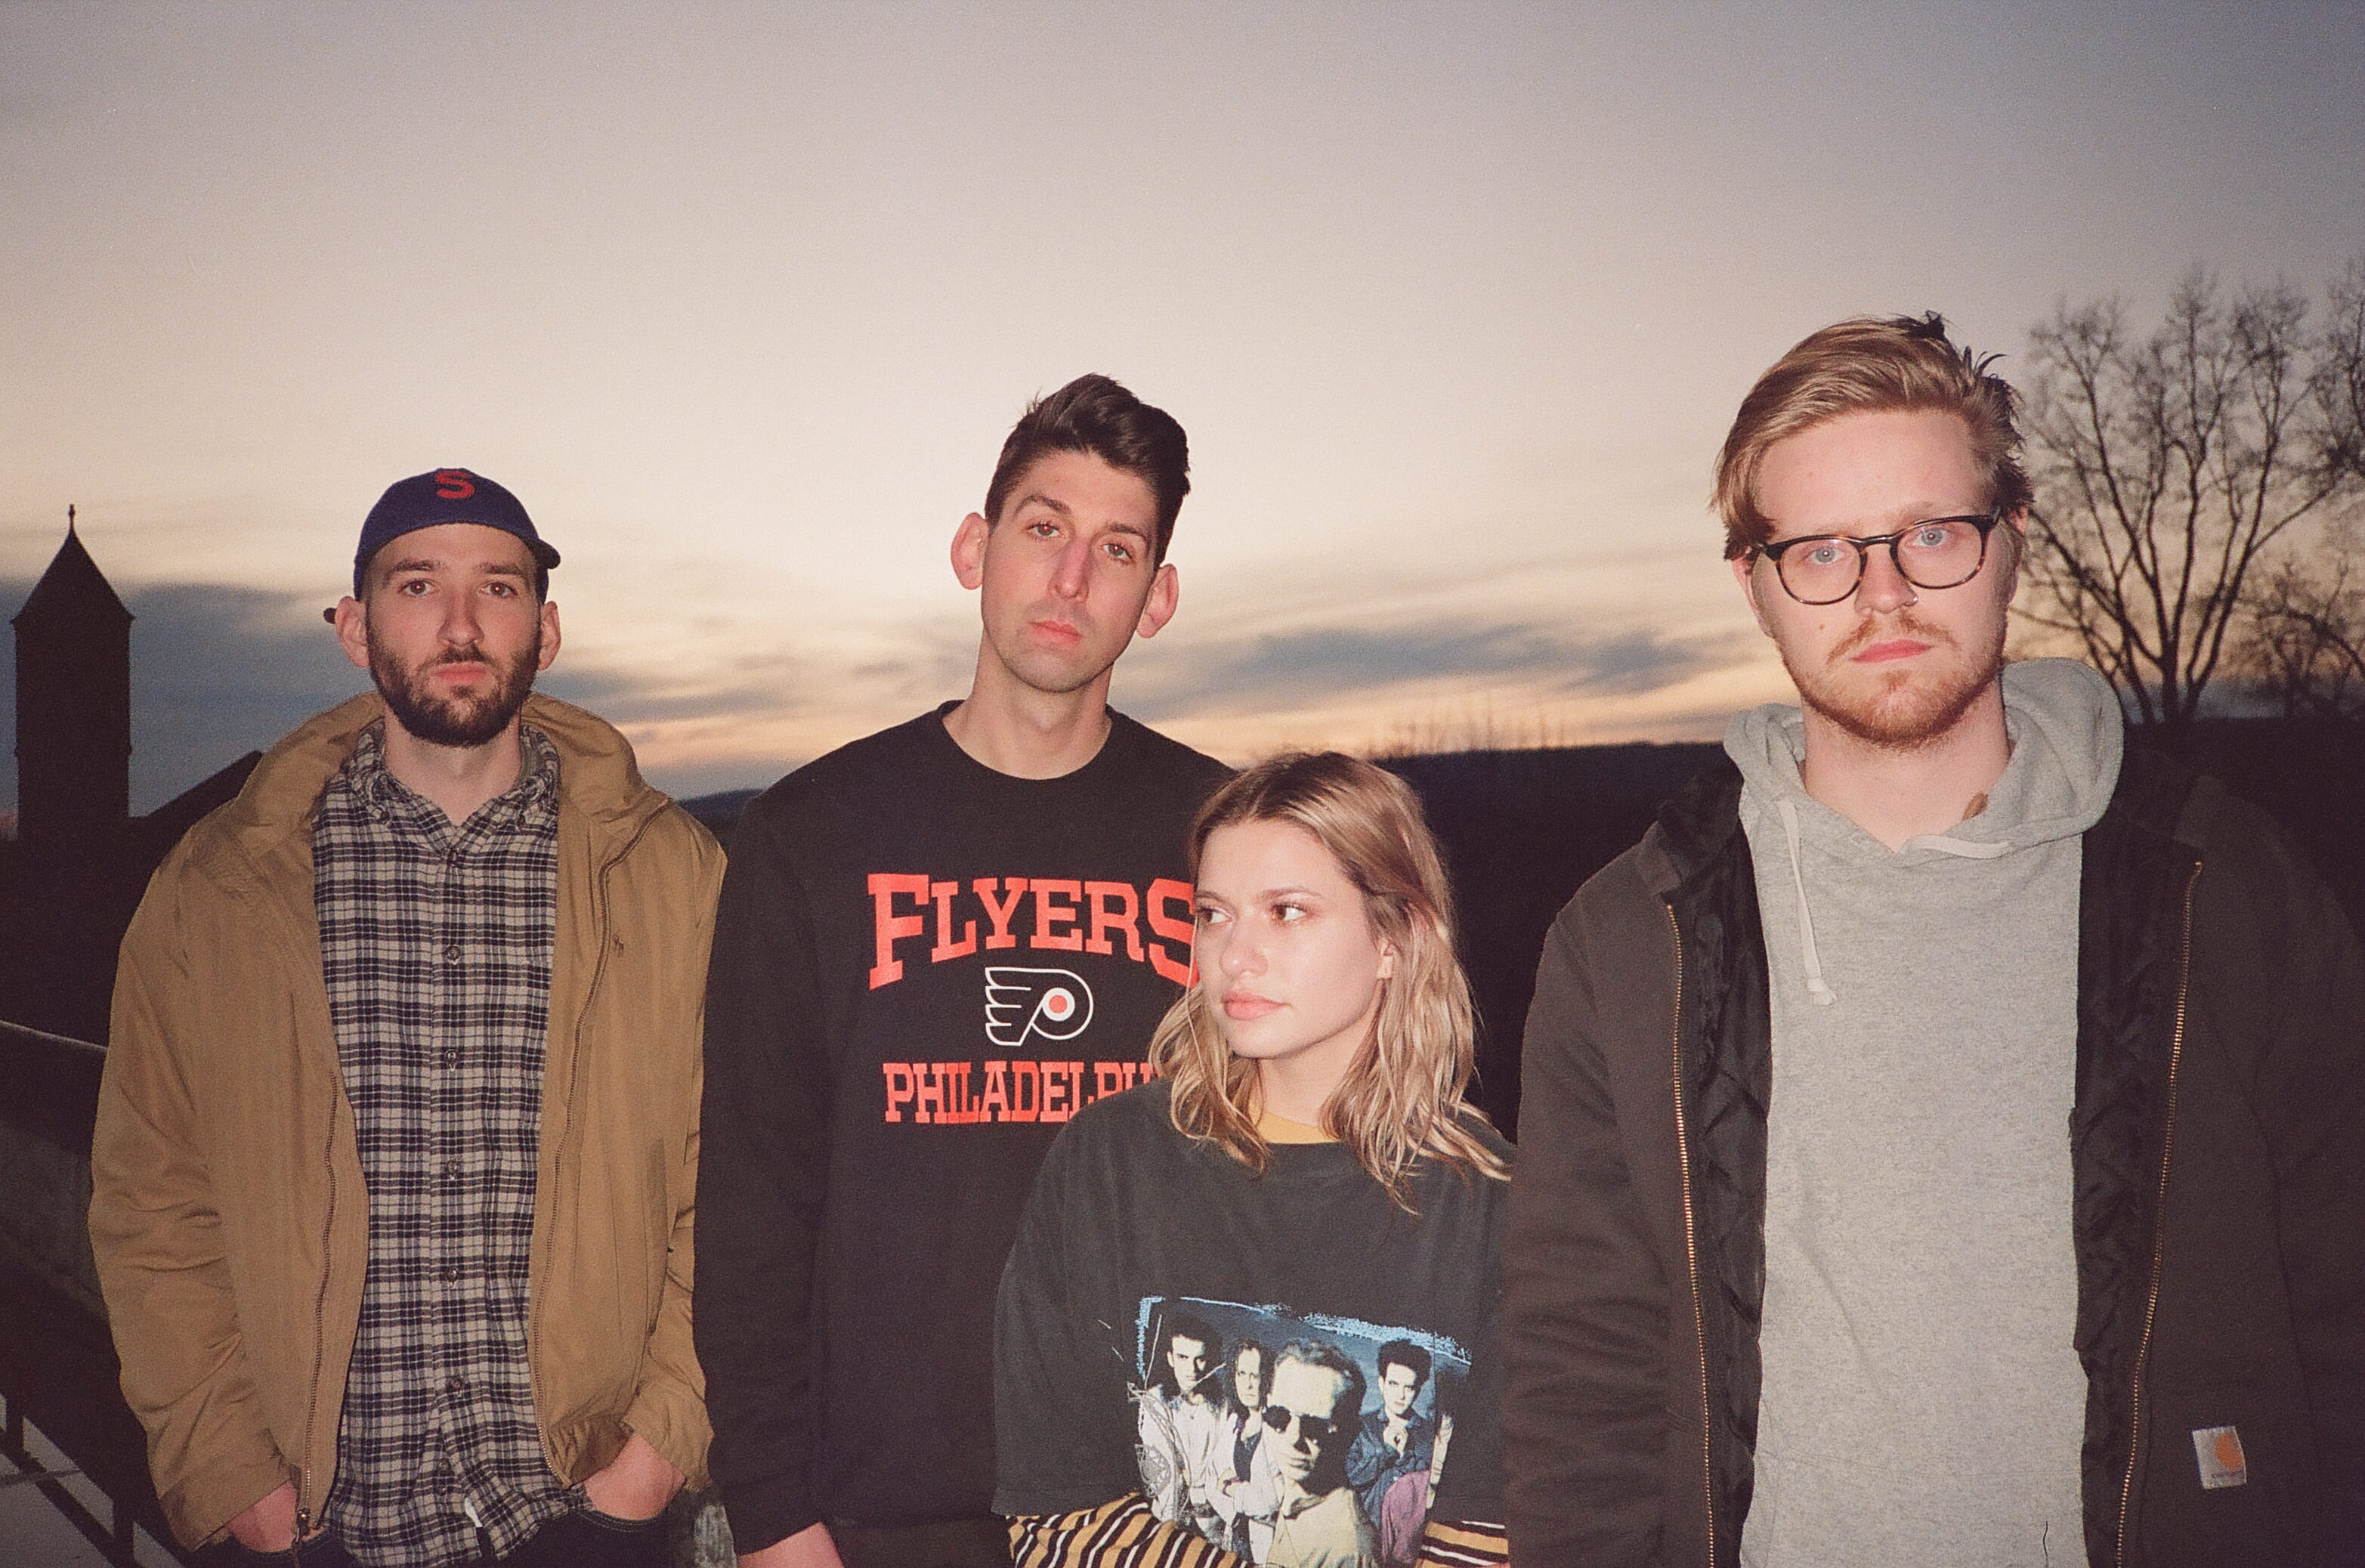 Tigers Jaw News